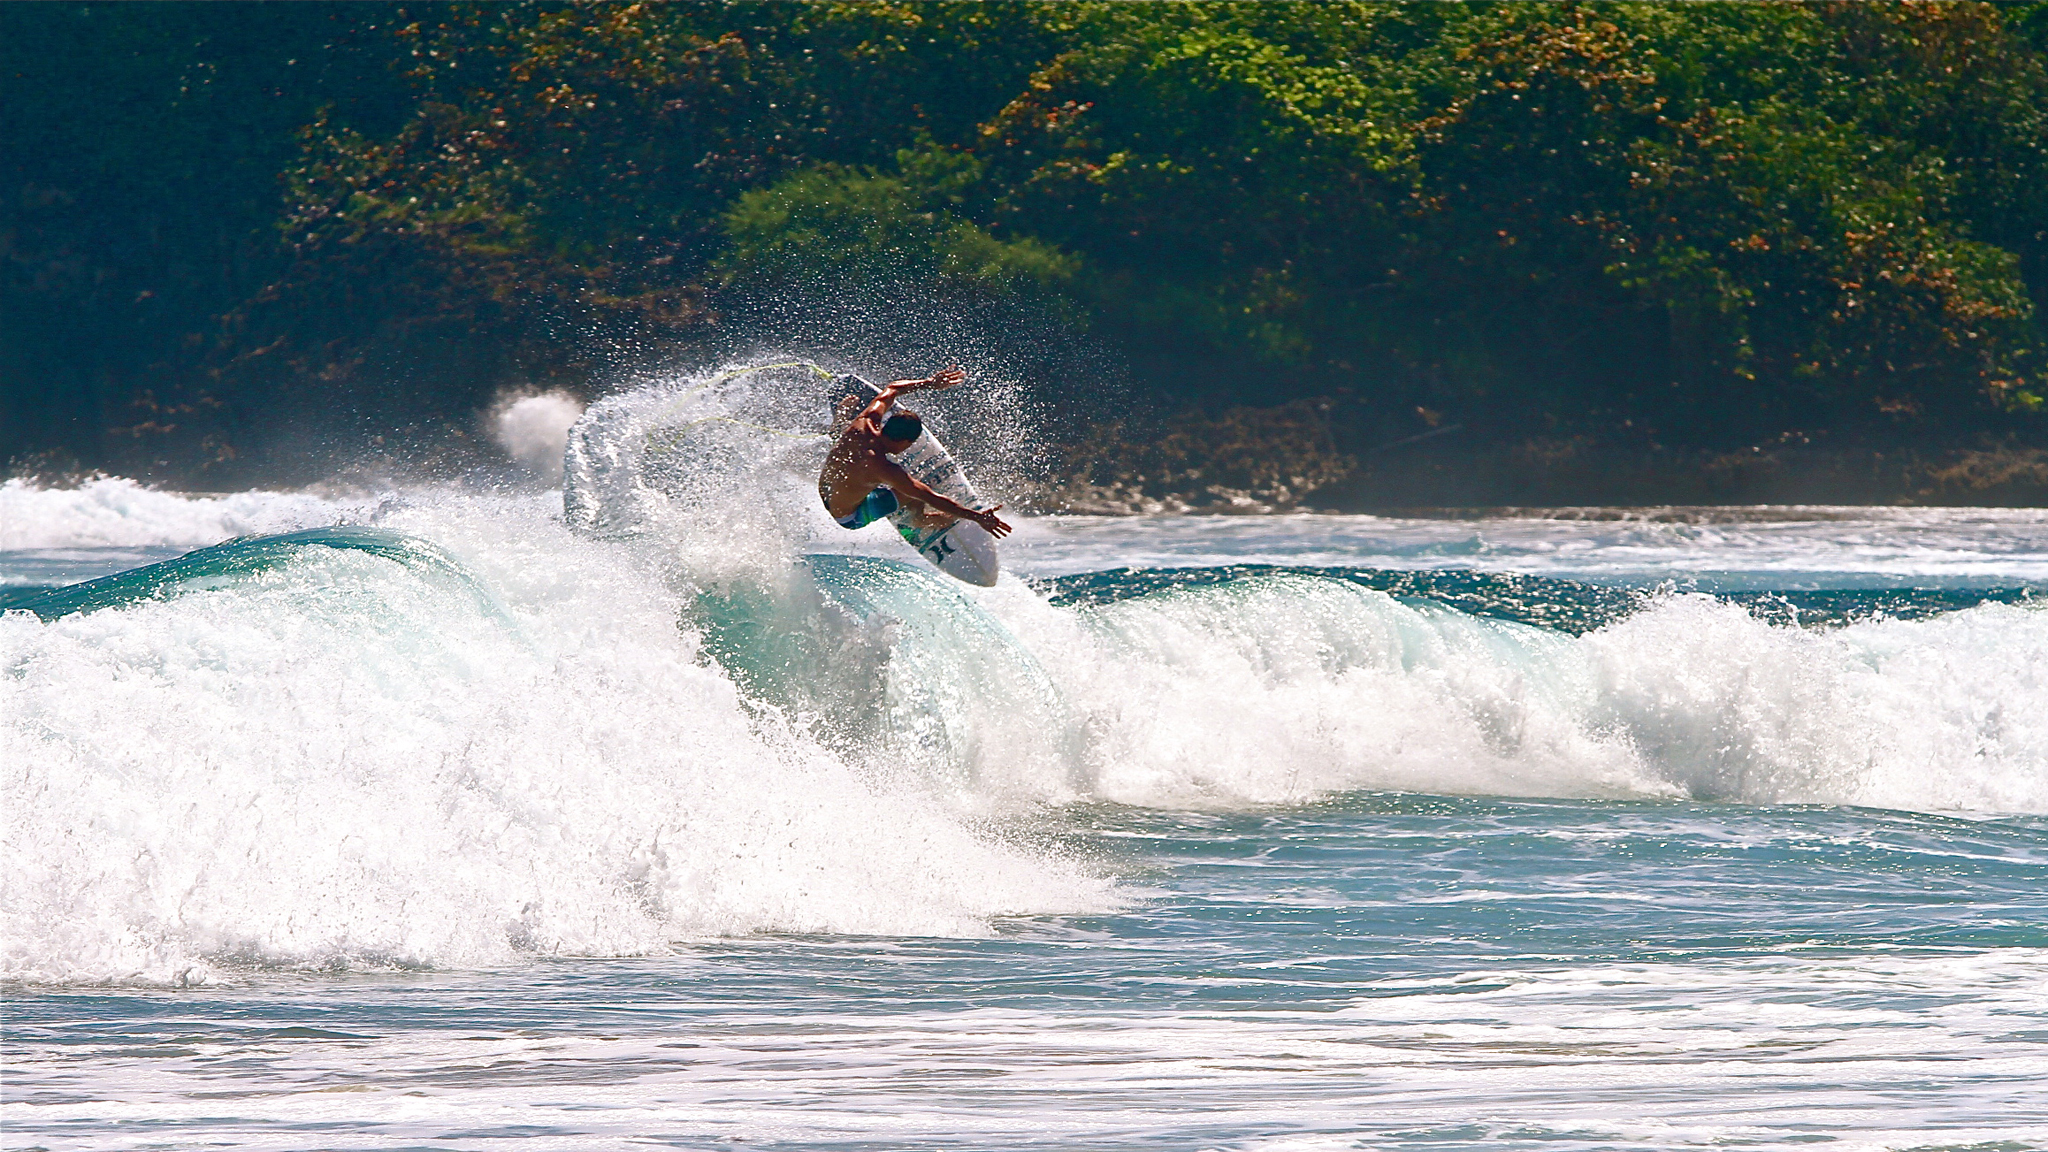 With the fall and winter surf season upon us, the Atlantic and Caribbean are once again seeing signs of surf. In Puerto Rico Brian Toth and friends are welcoming the waves back with arms wide open.